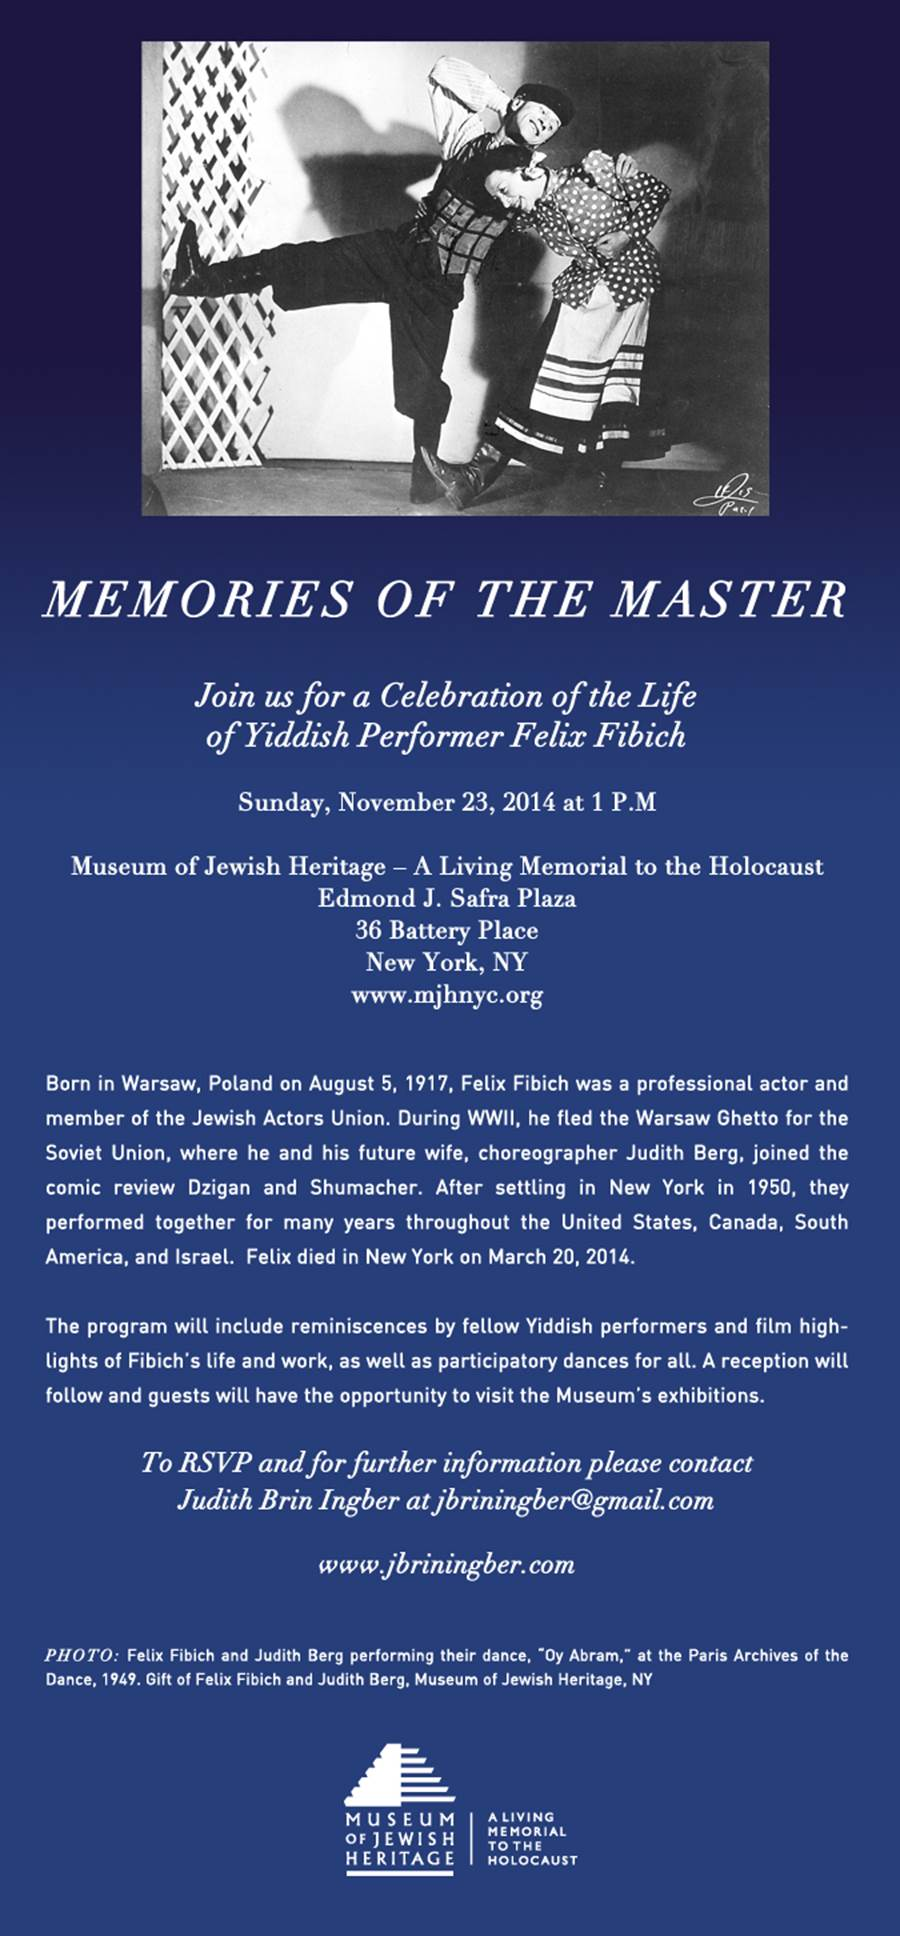 Invitation to Memorial for Yiddish Performer, Felix Fibich